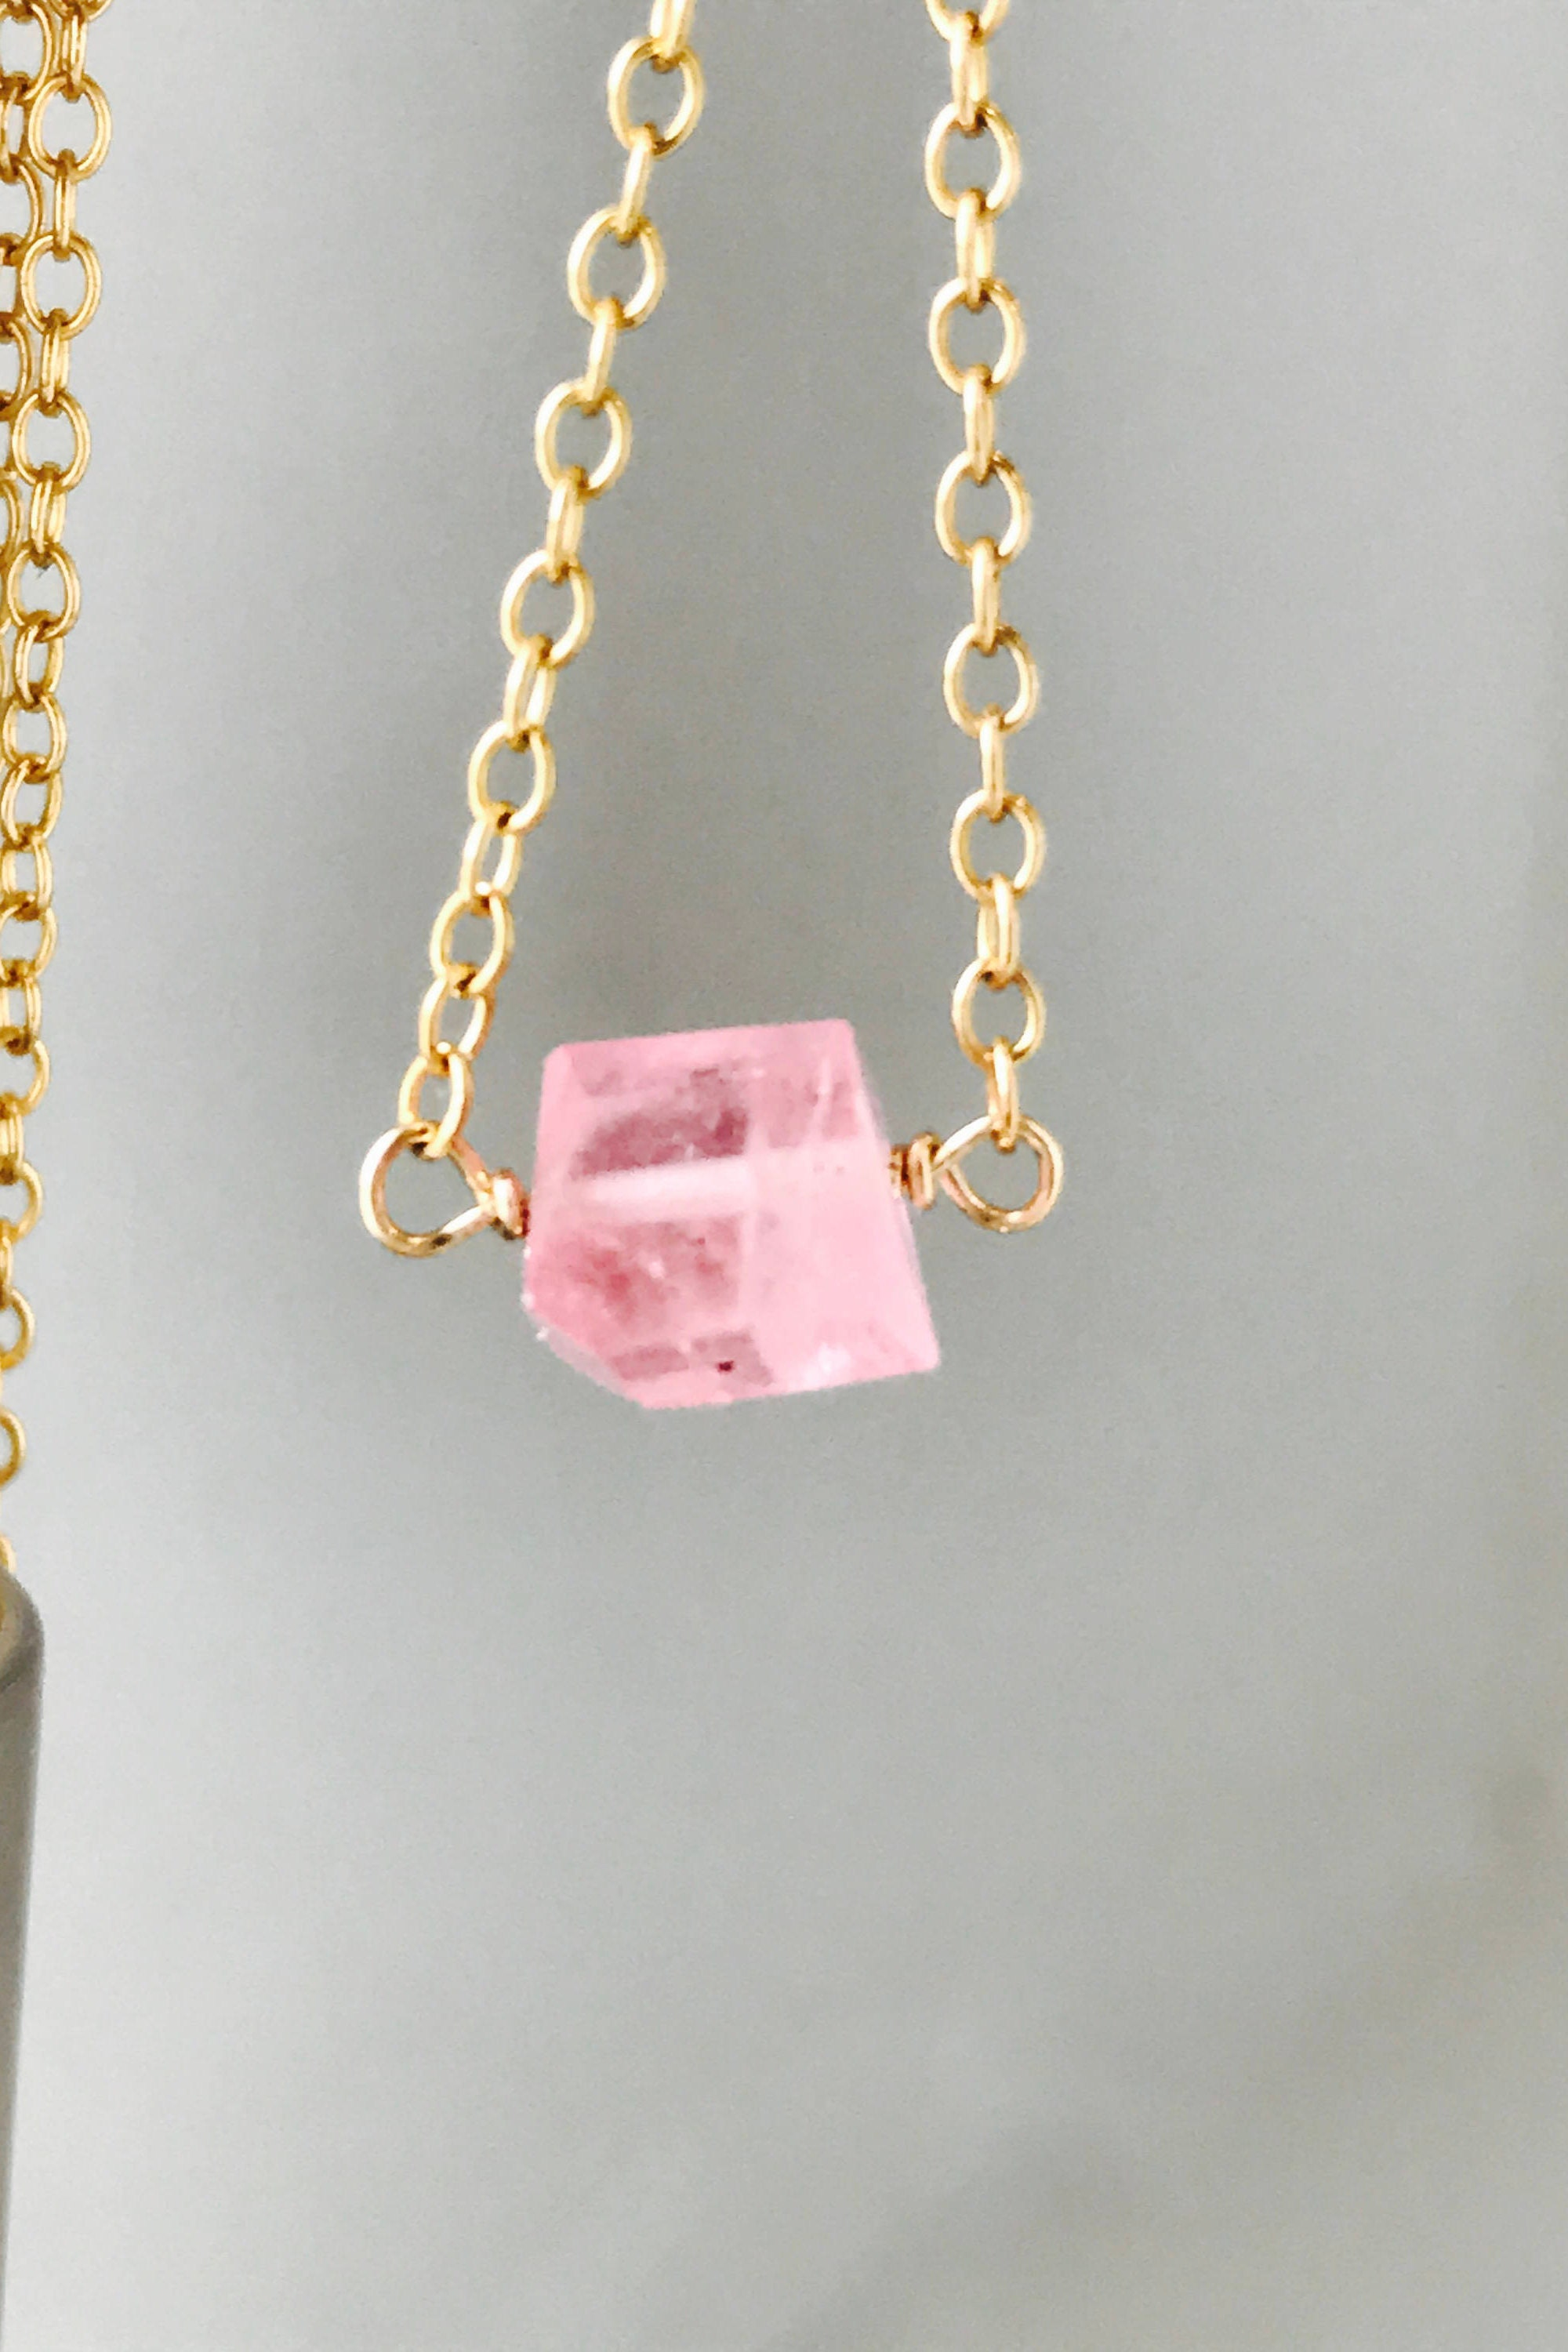 necklace lyst shana kolar pink diamond s pendant metallic gold tourmaline women gulati jewelry